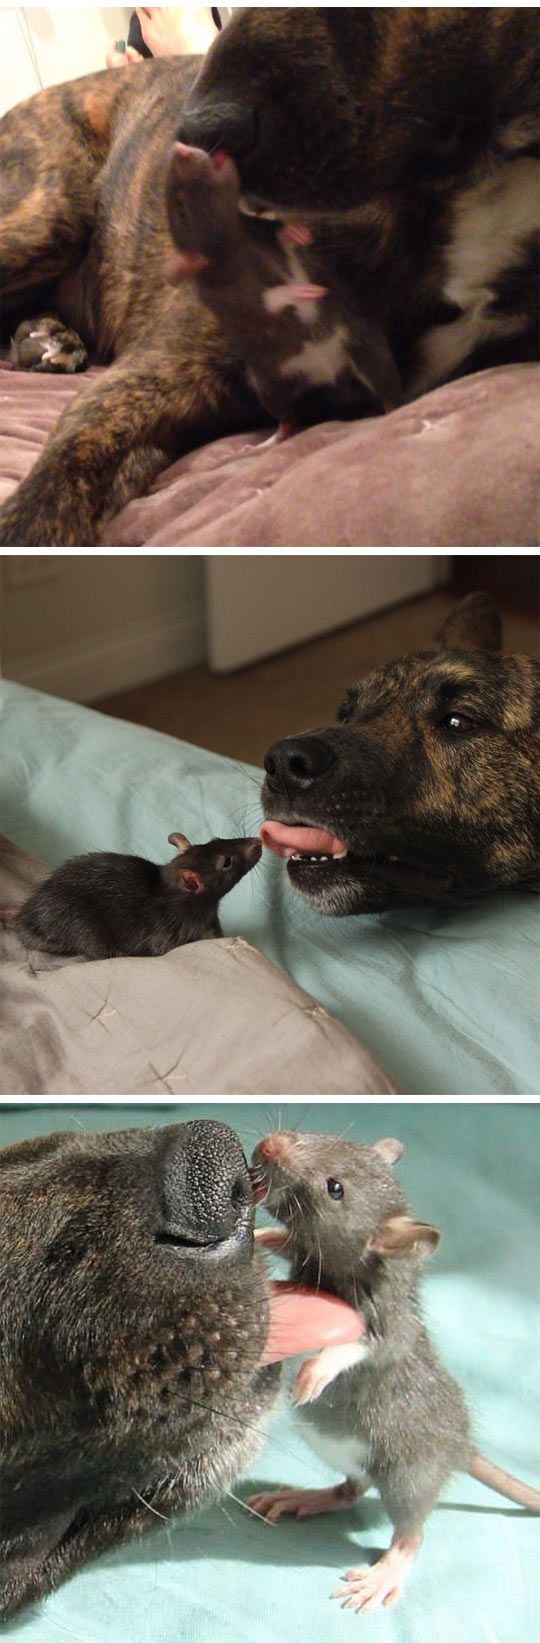 (3) Dog and rat are best friends